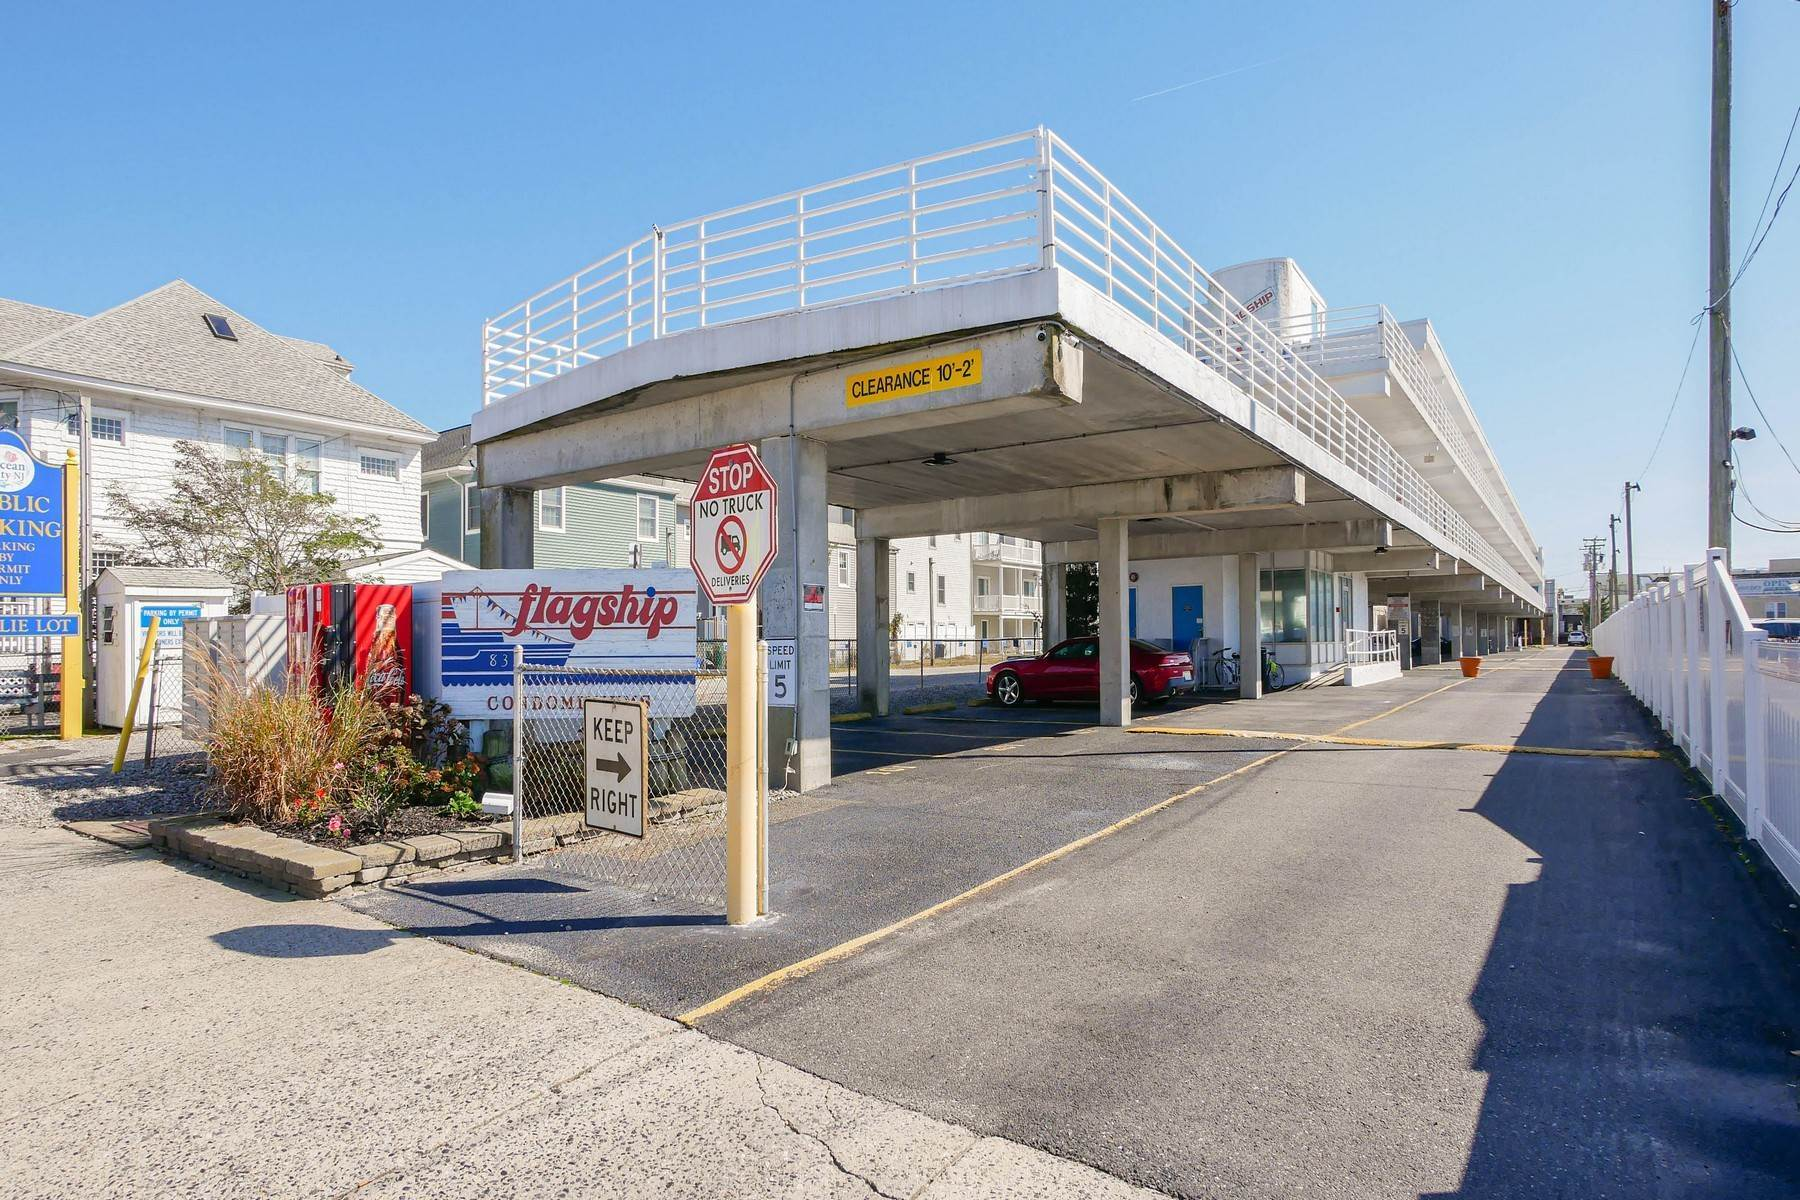 29. Condominiums for Sale at Boardwalk Best Buy 831 Atlantic Ave, #115-116 Ocean City, New Jersey 08226 United States